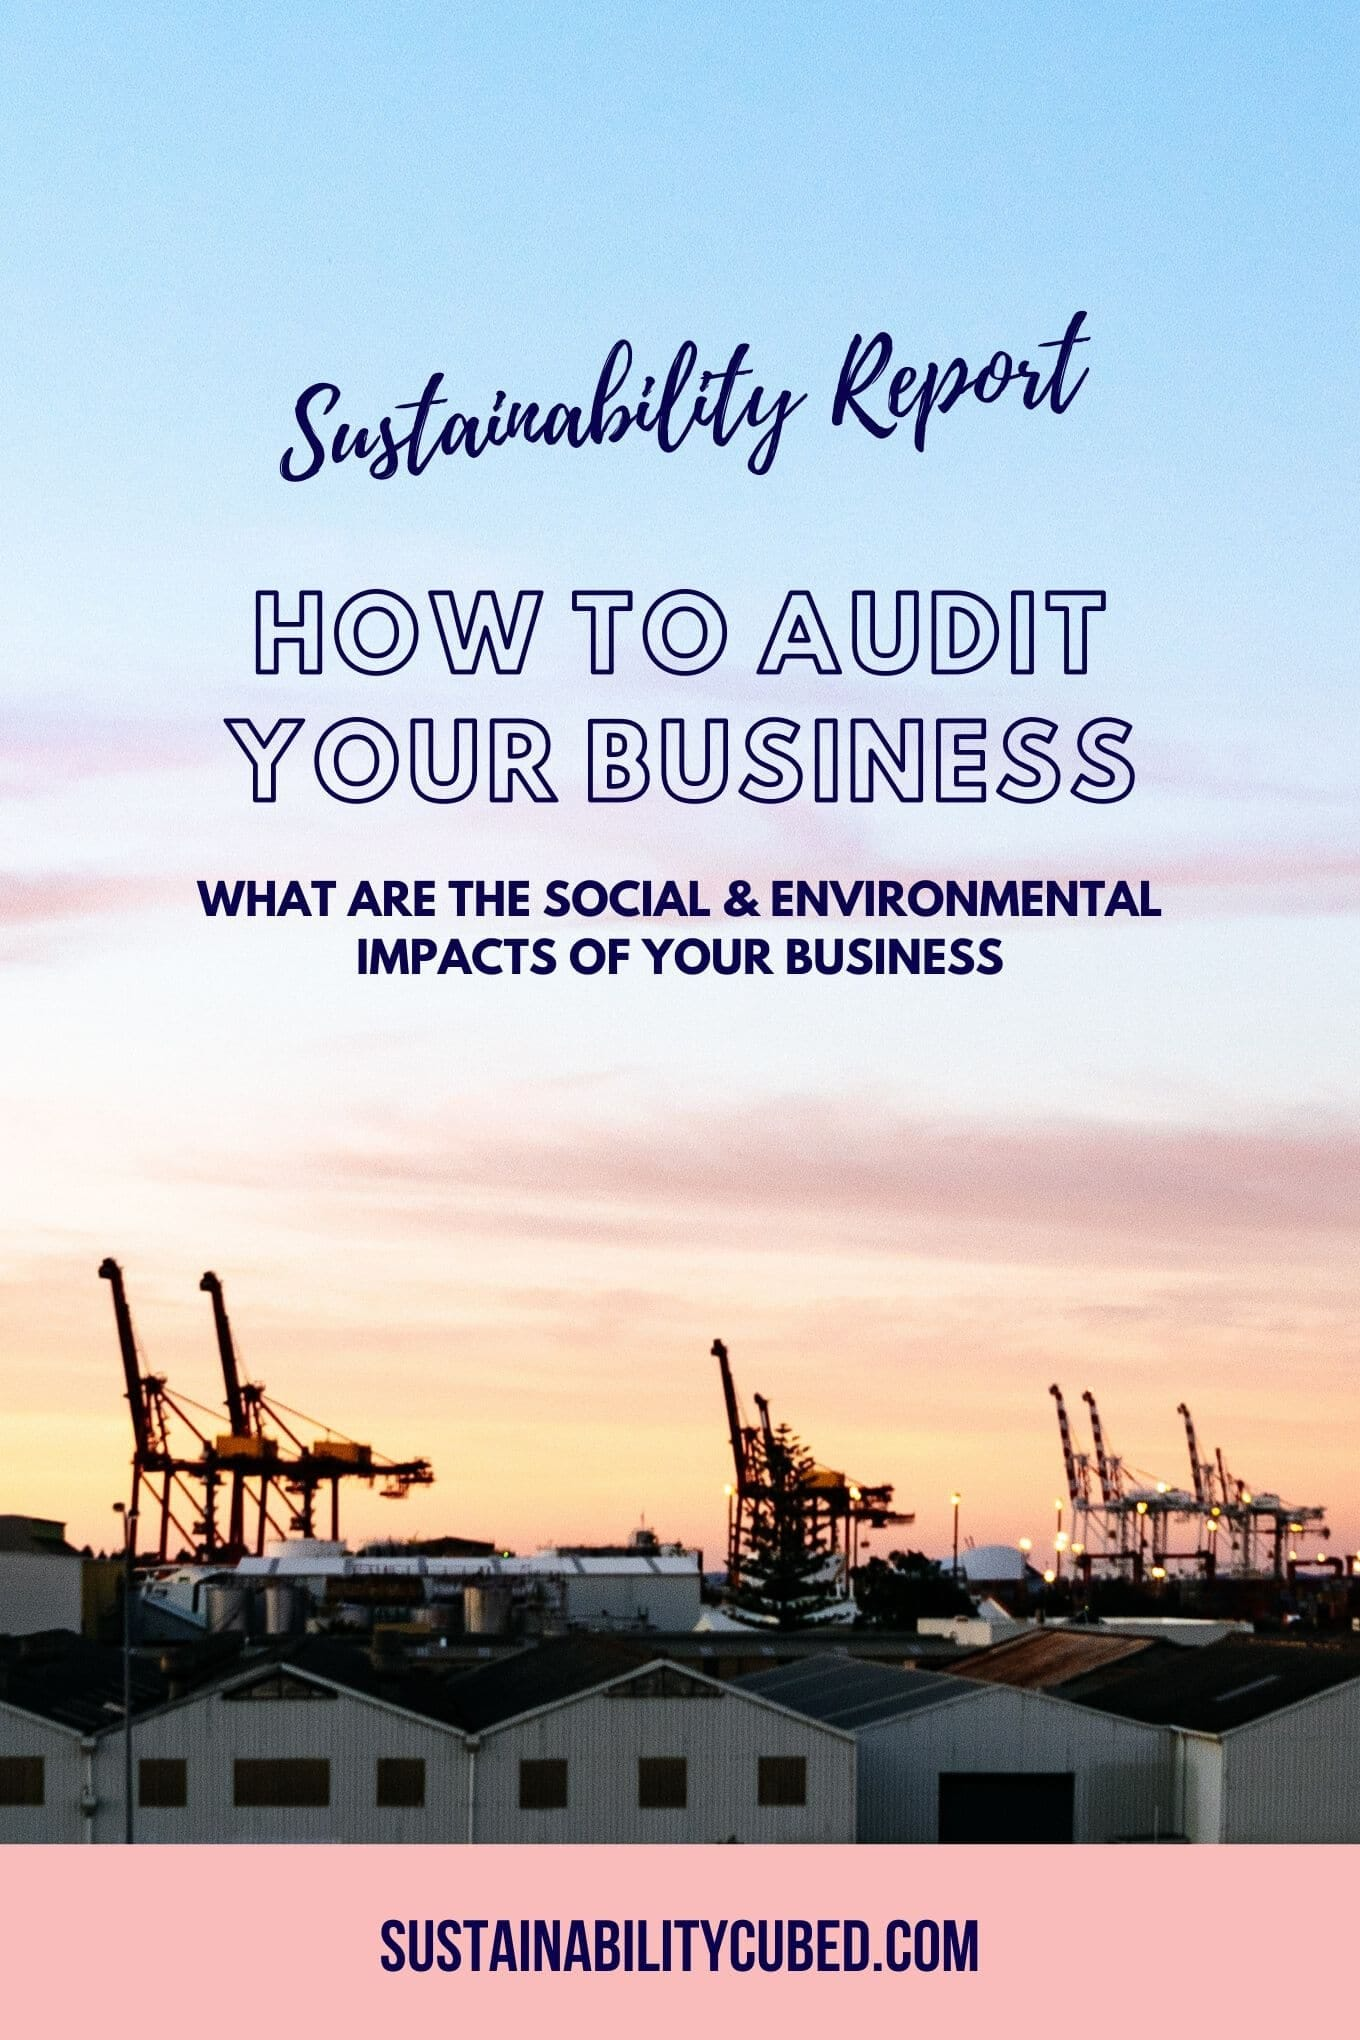 Sustainability Report for Sustainability Cubed